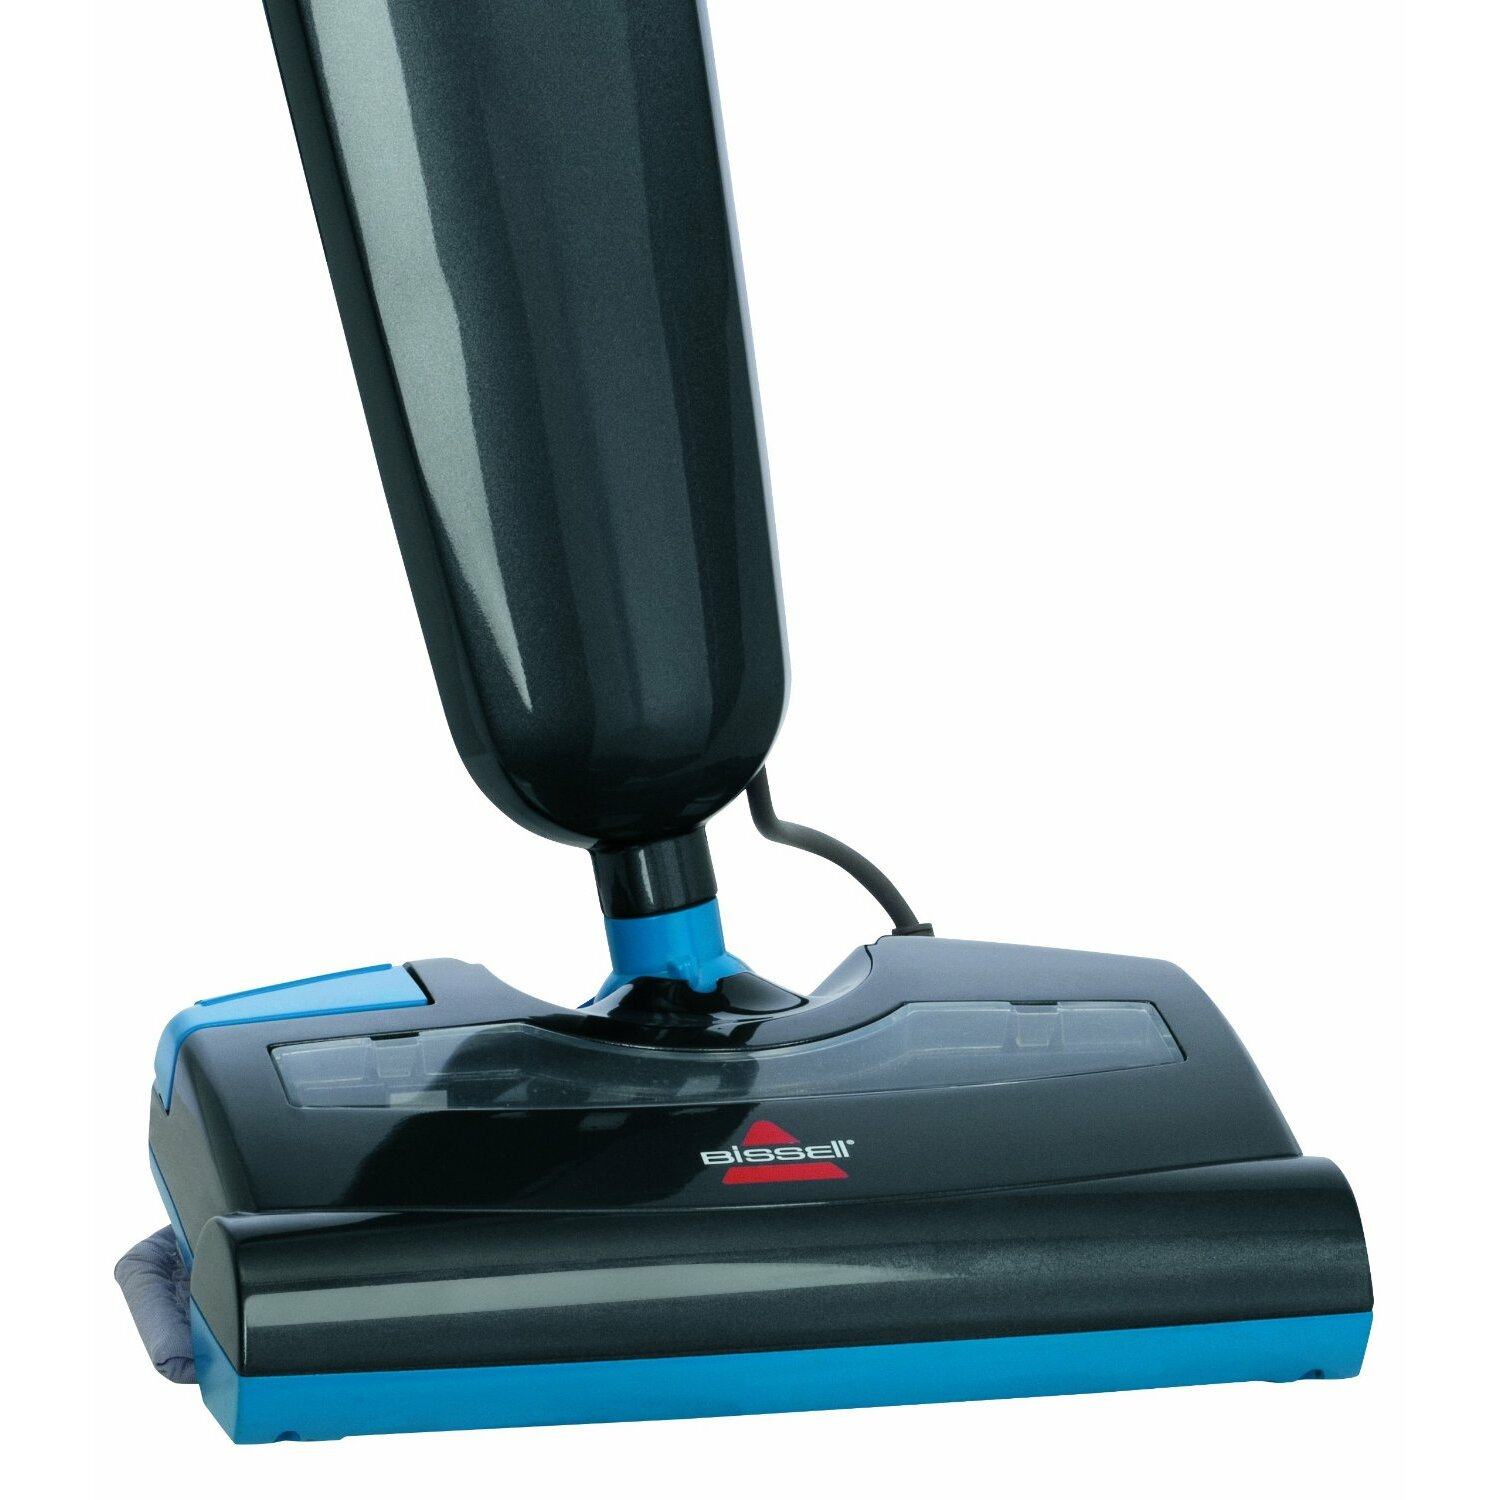 bissell upright steam cleaner instructions